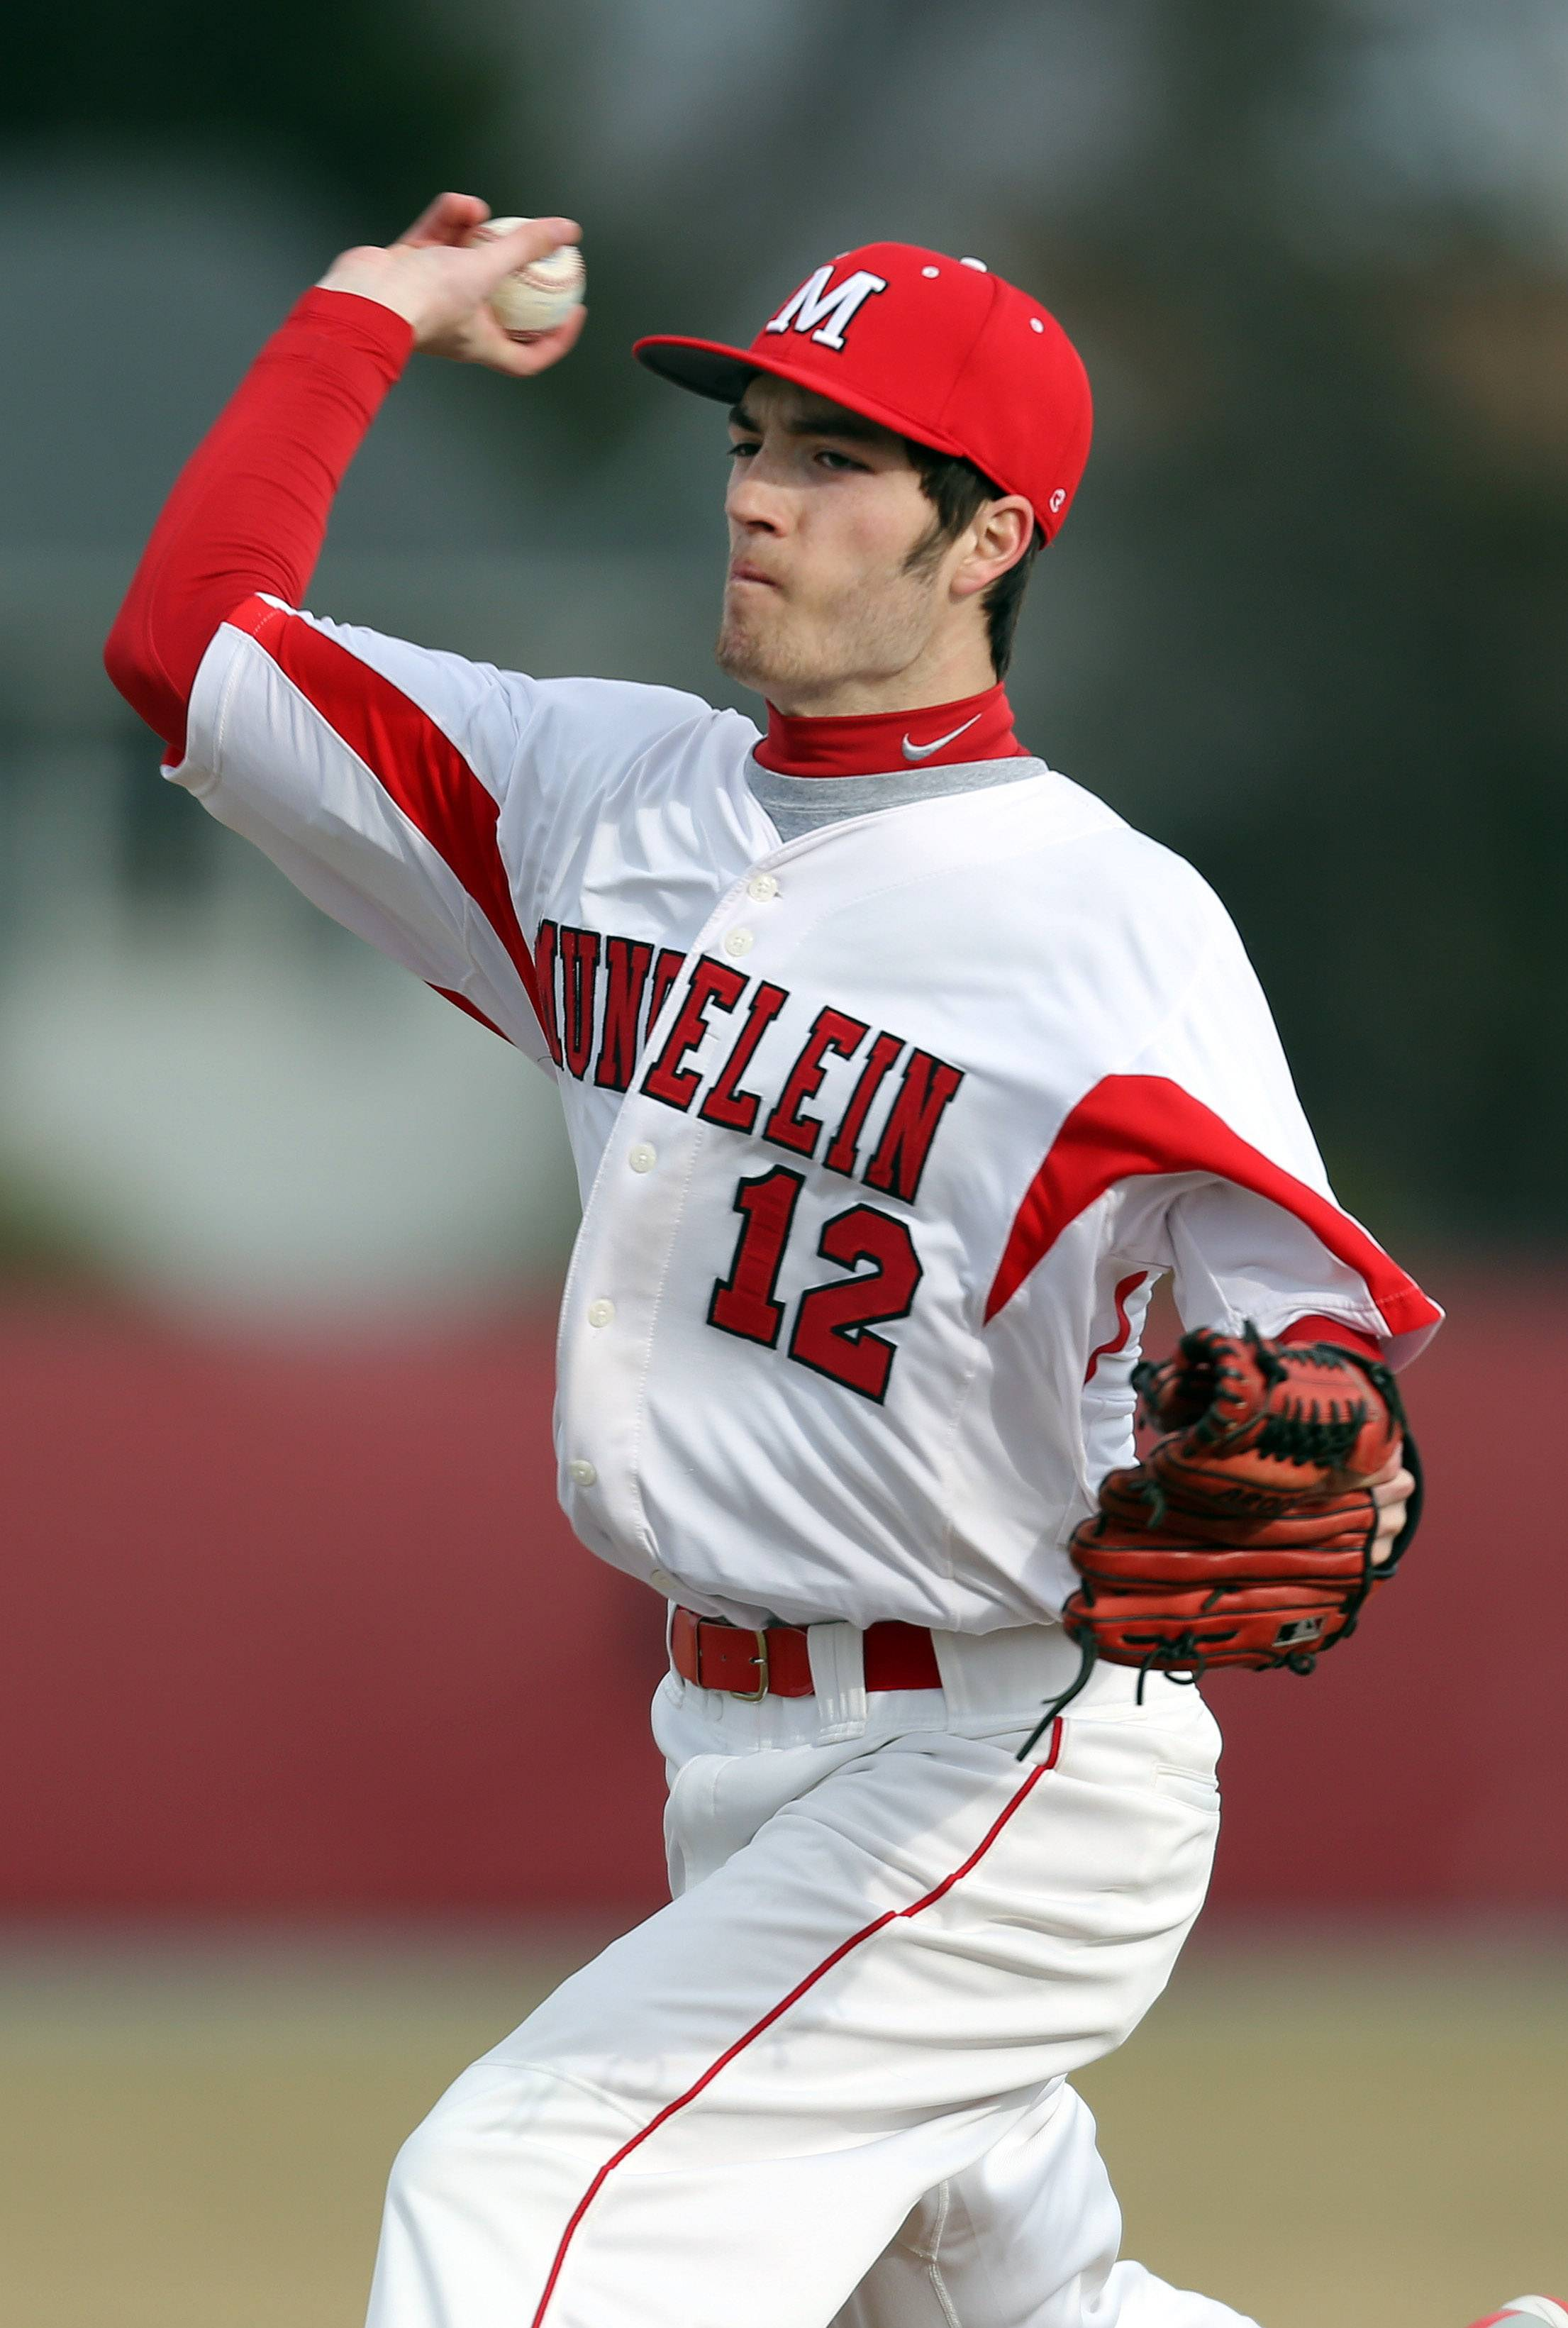 Mundelein's Dillon O'Donoghue pitches against Wheeling on Wednesday at Mundelein.